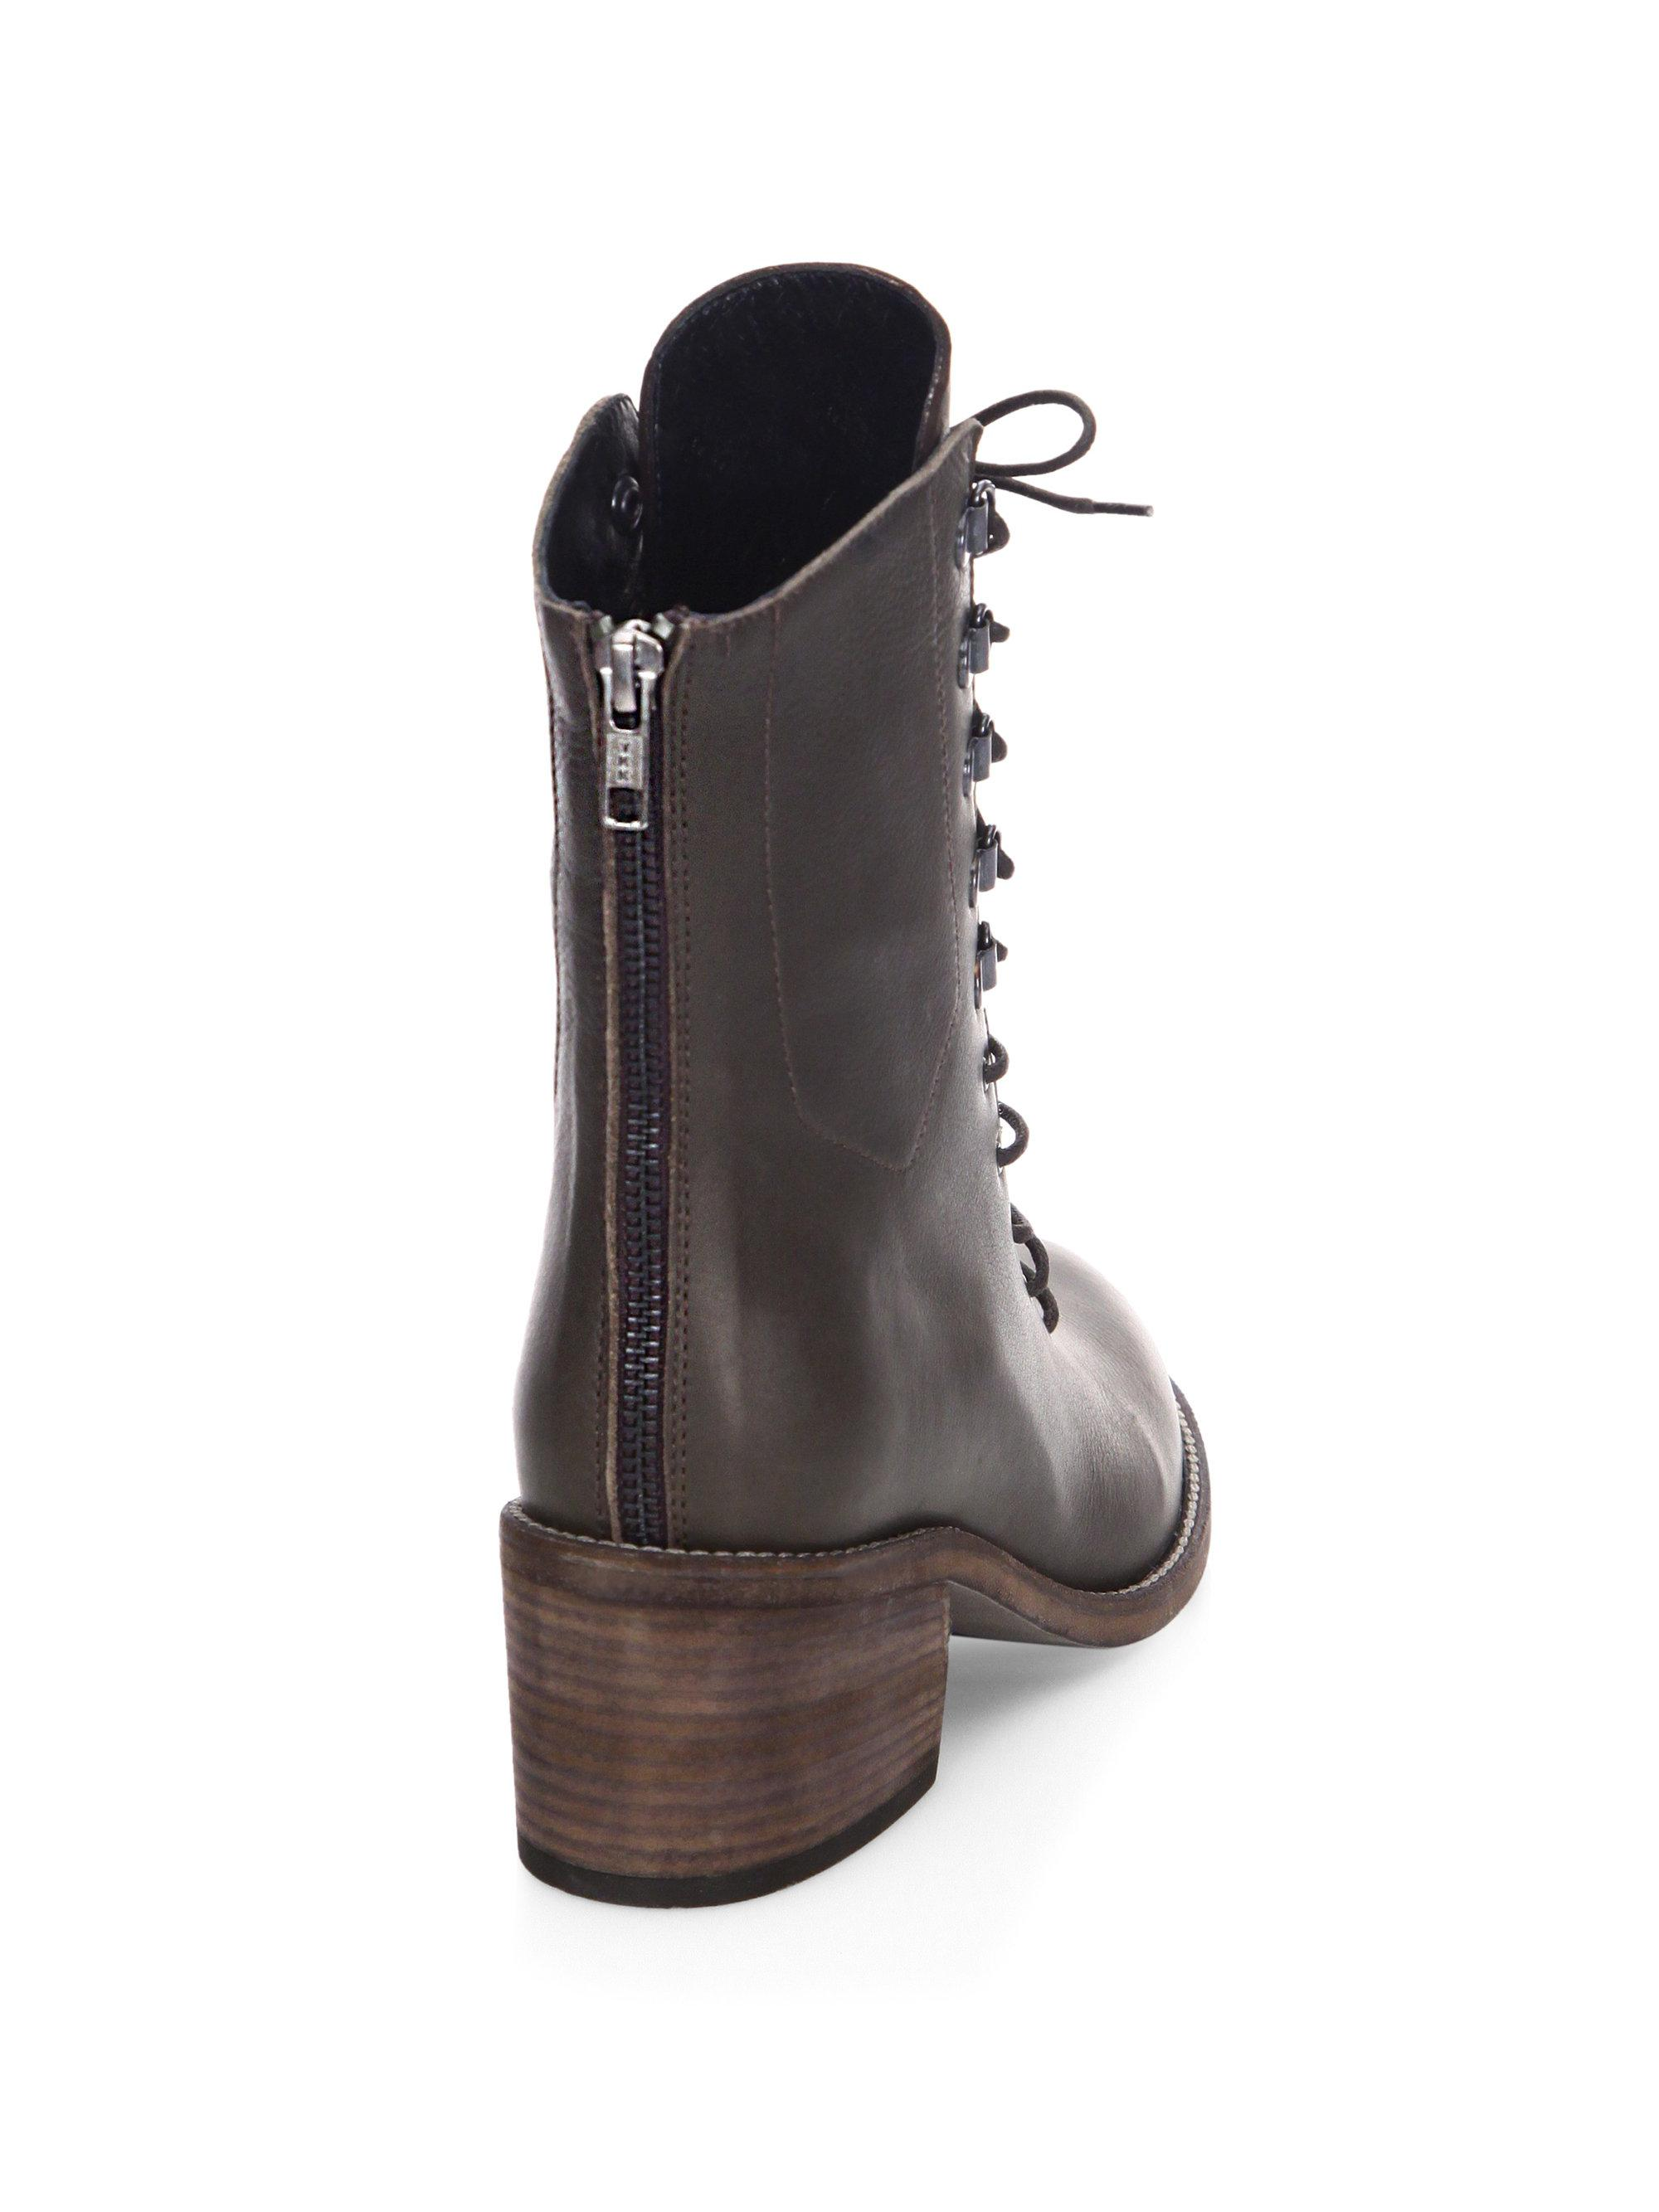 LD Tuttle The Below Mid Calf Leather Boots